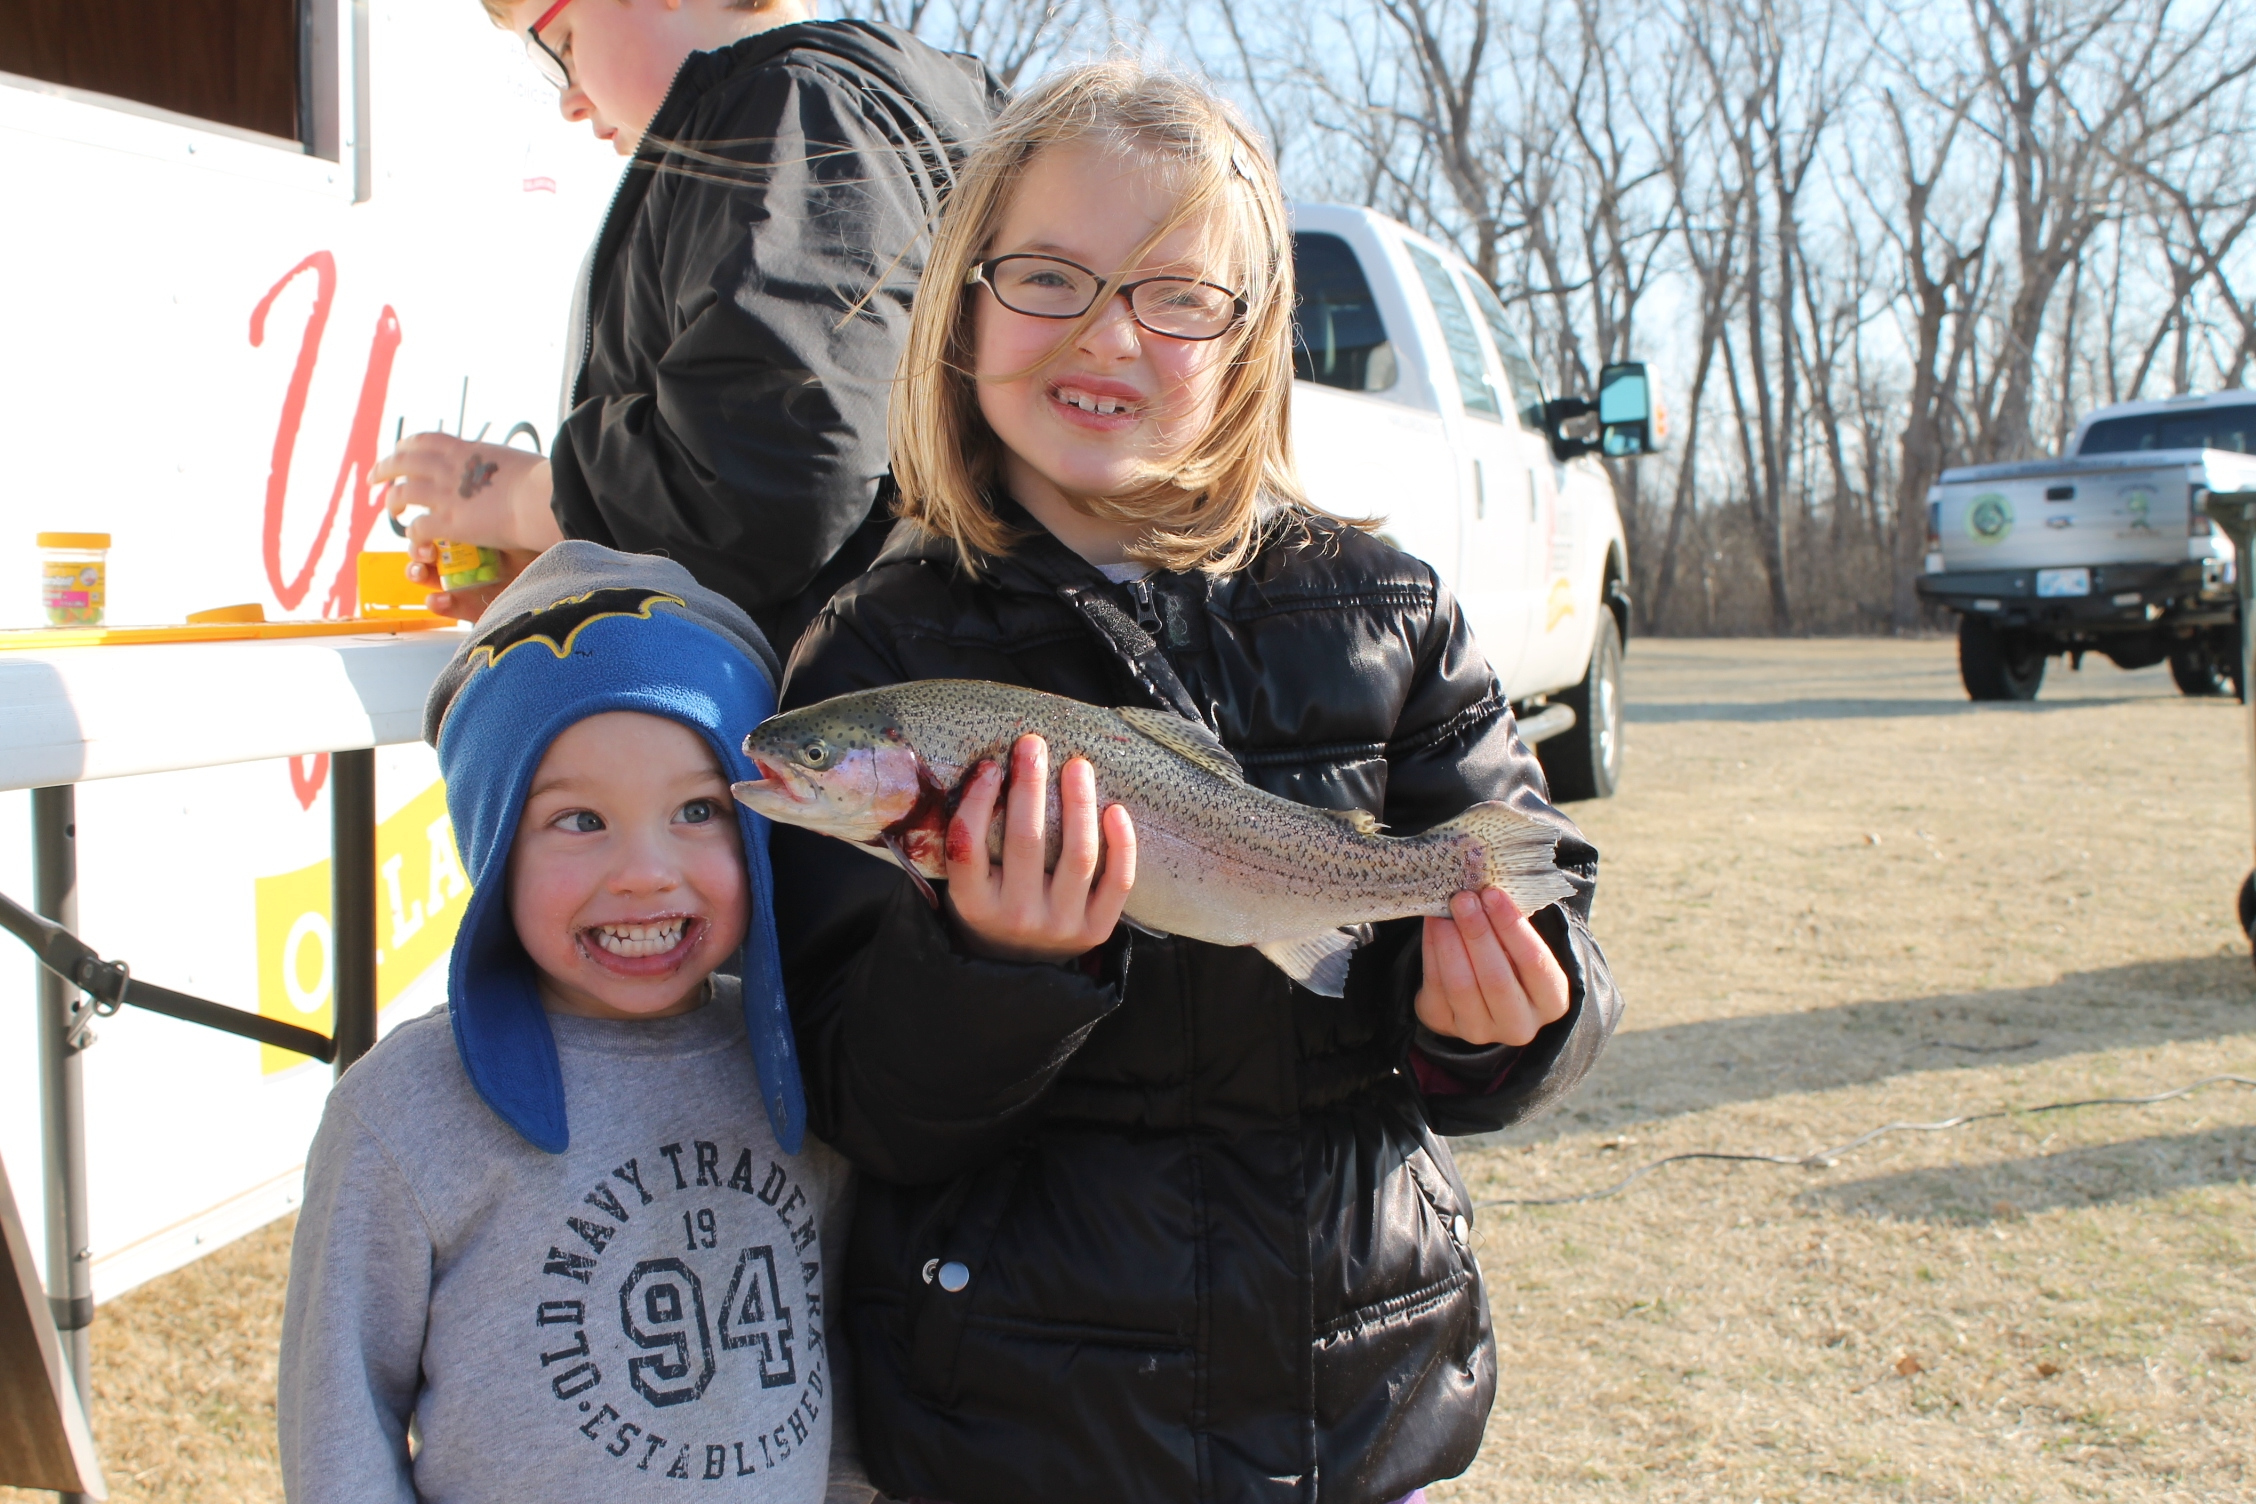 Kid's Trout Fish Out